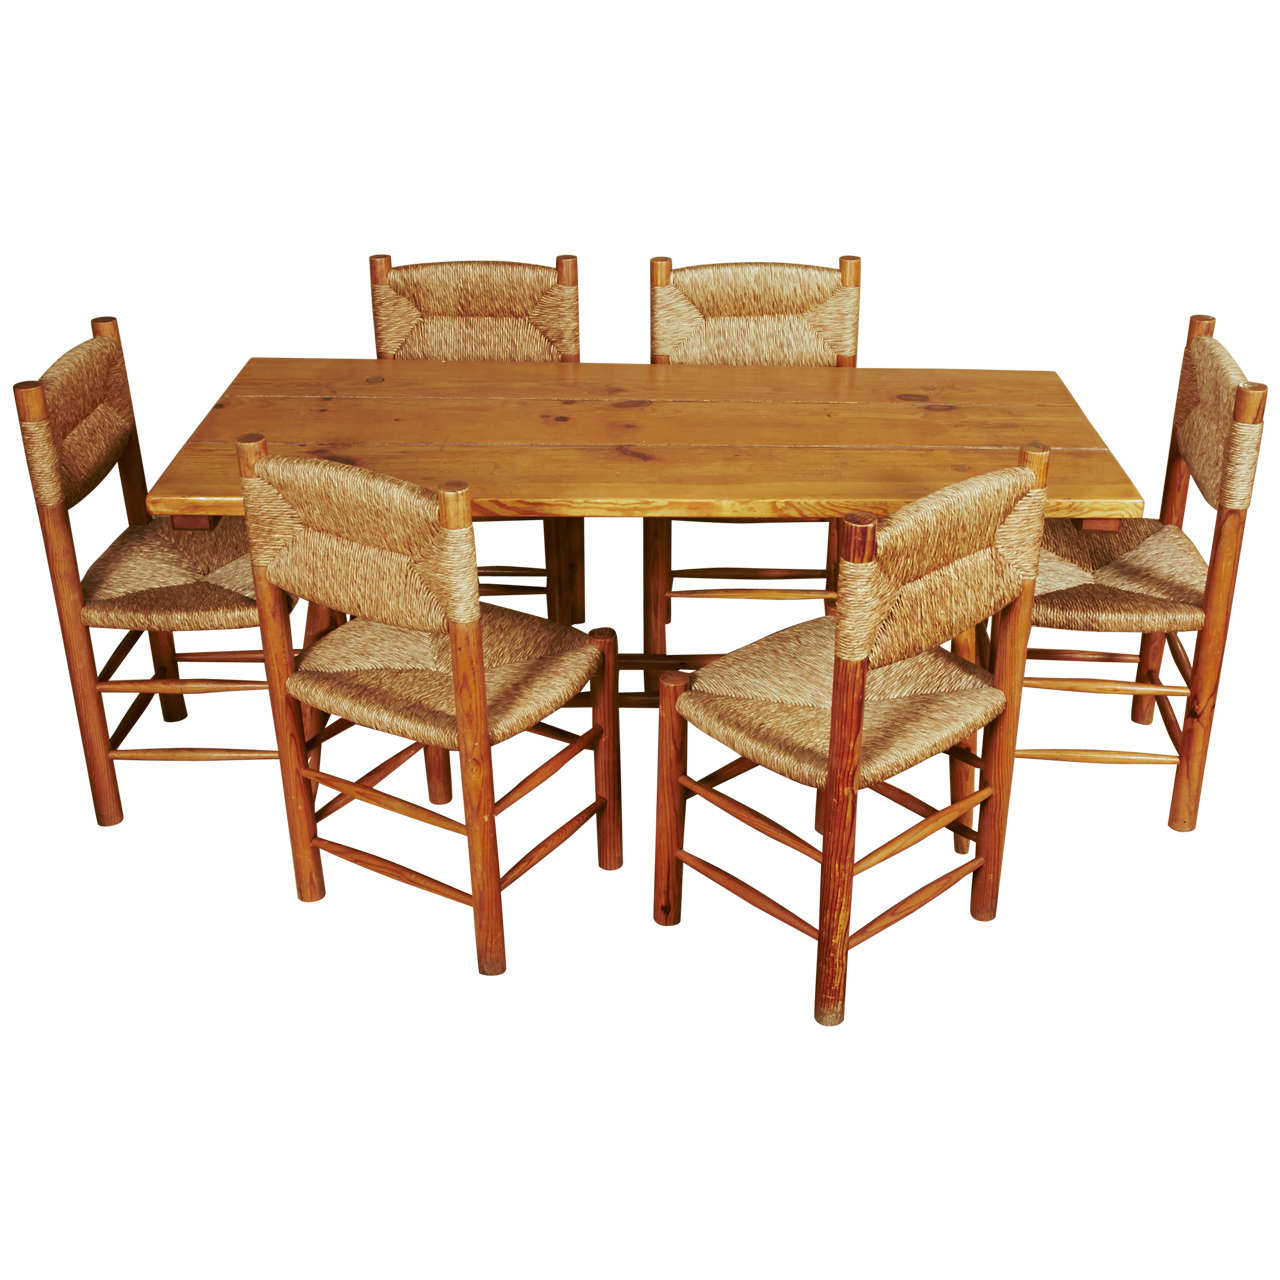 charlotte perriand dining set with six chairs at 1stdibs